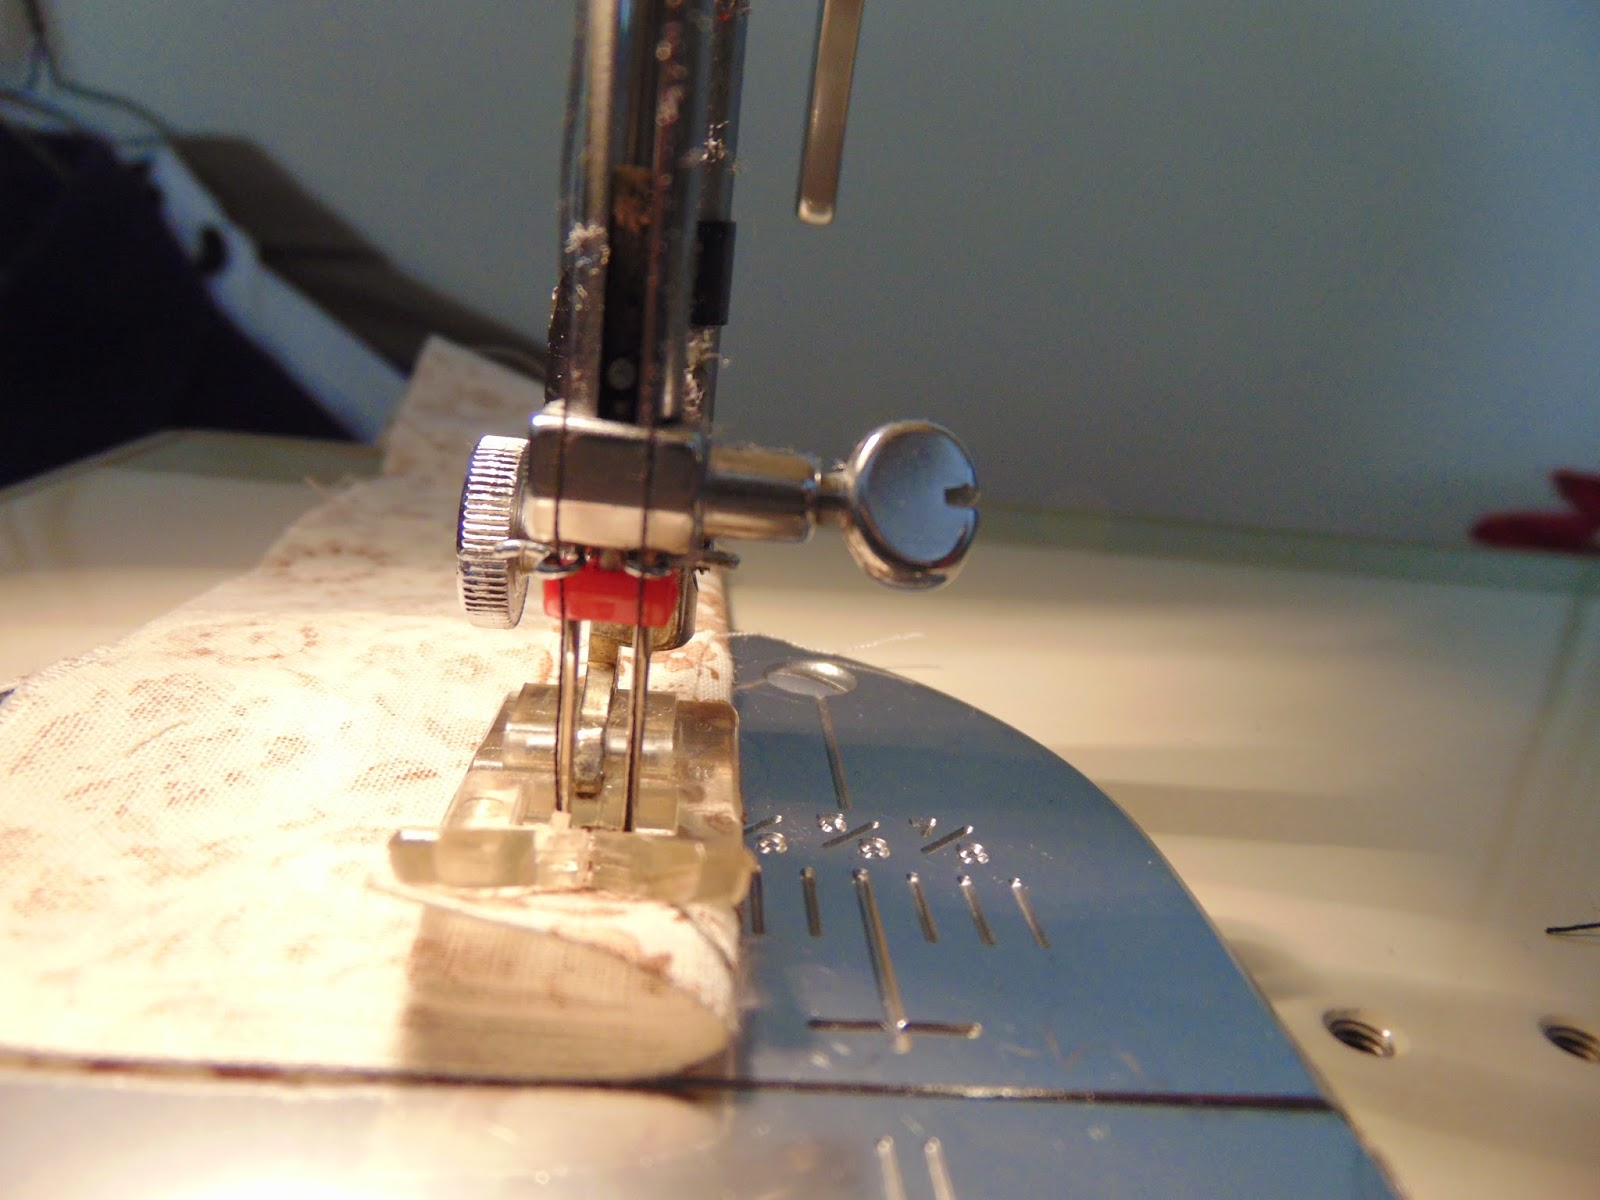 Close up of threaded double needle in sewing machine